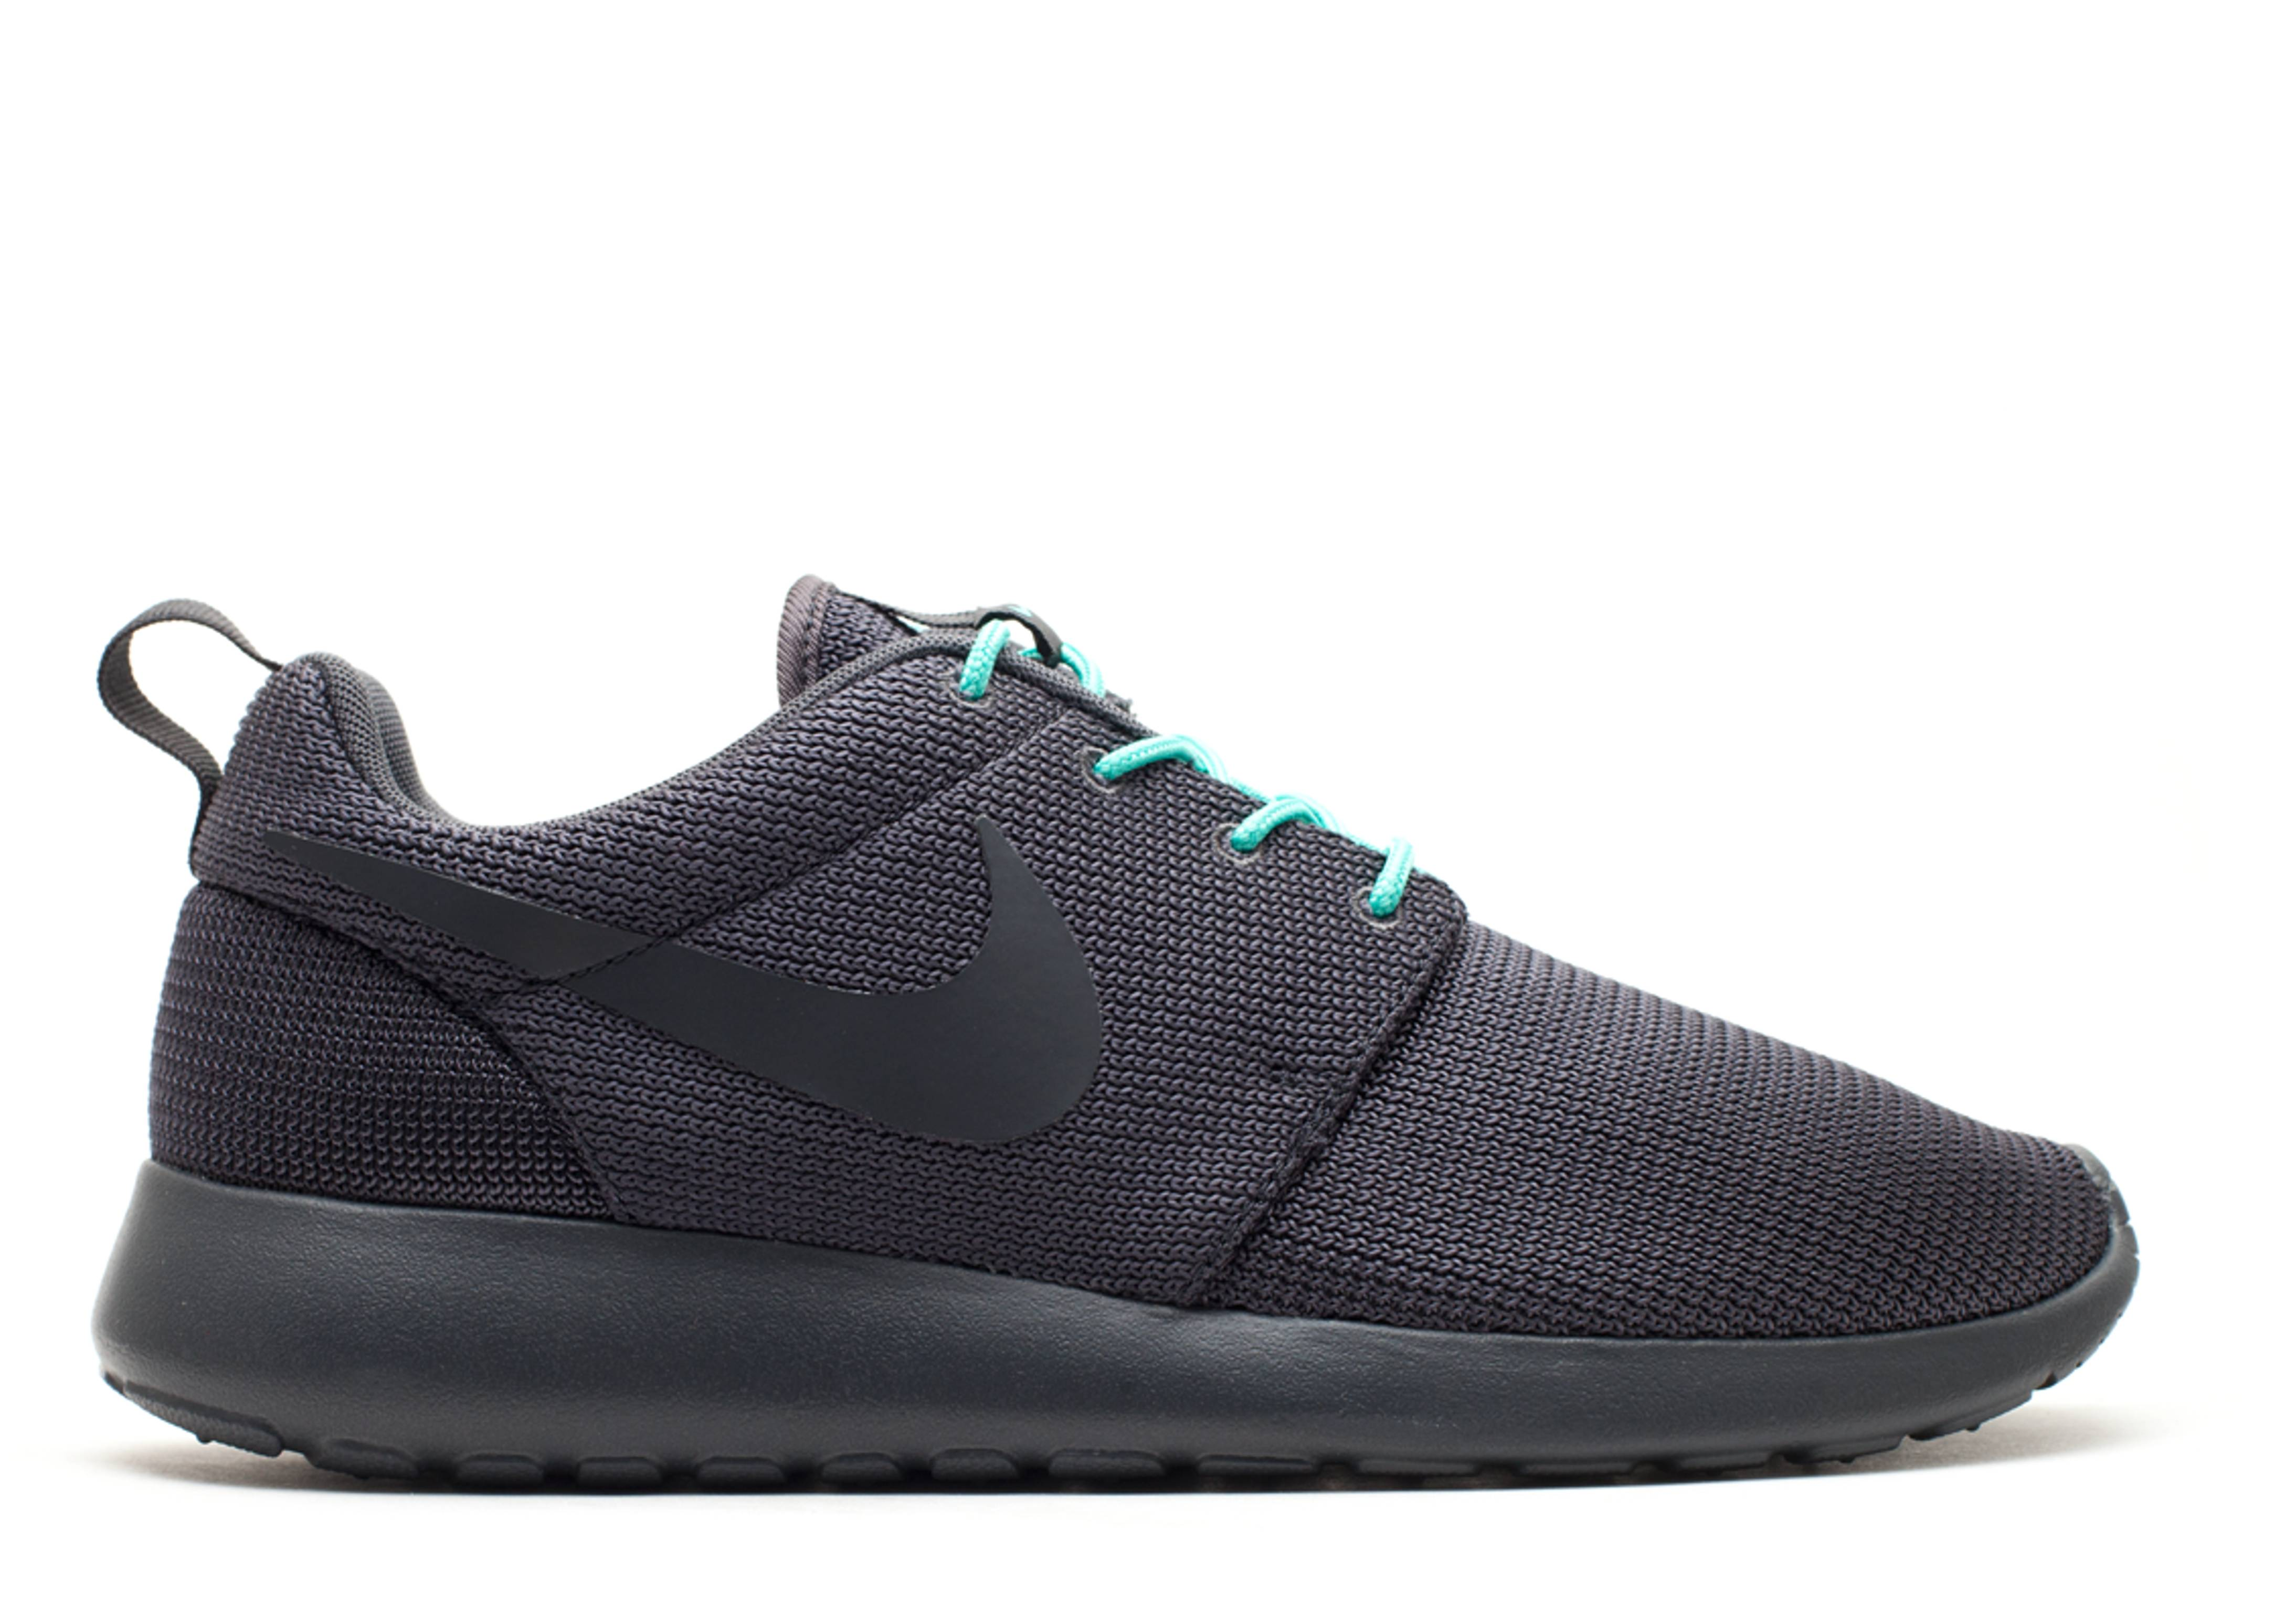 5047a006d3231 Rosherun - Nike - 511881 030 - anthracite crystal mint